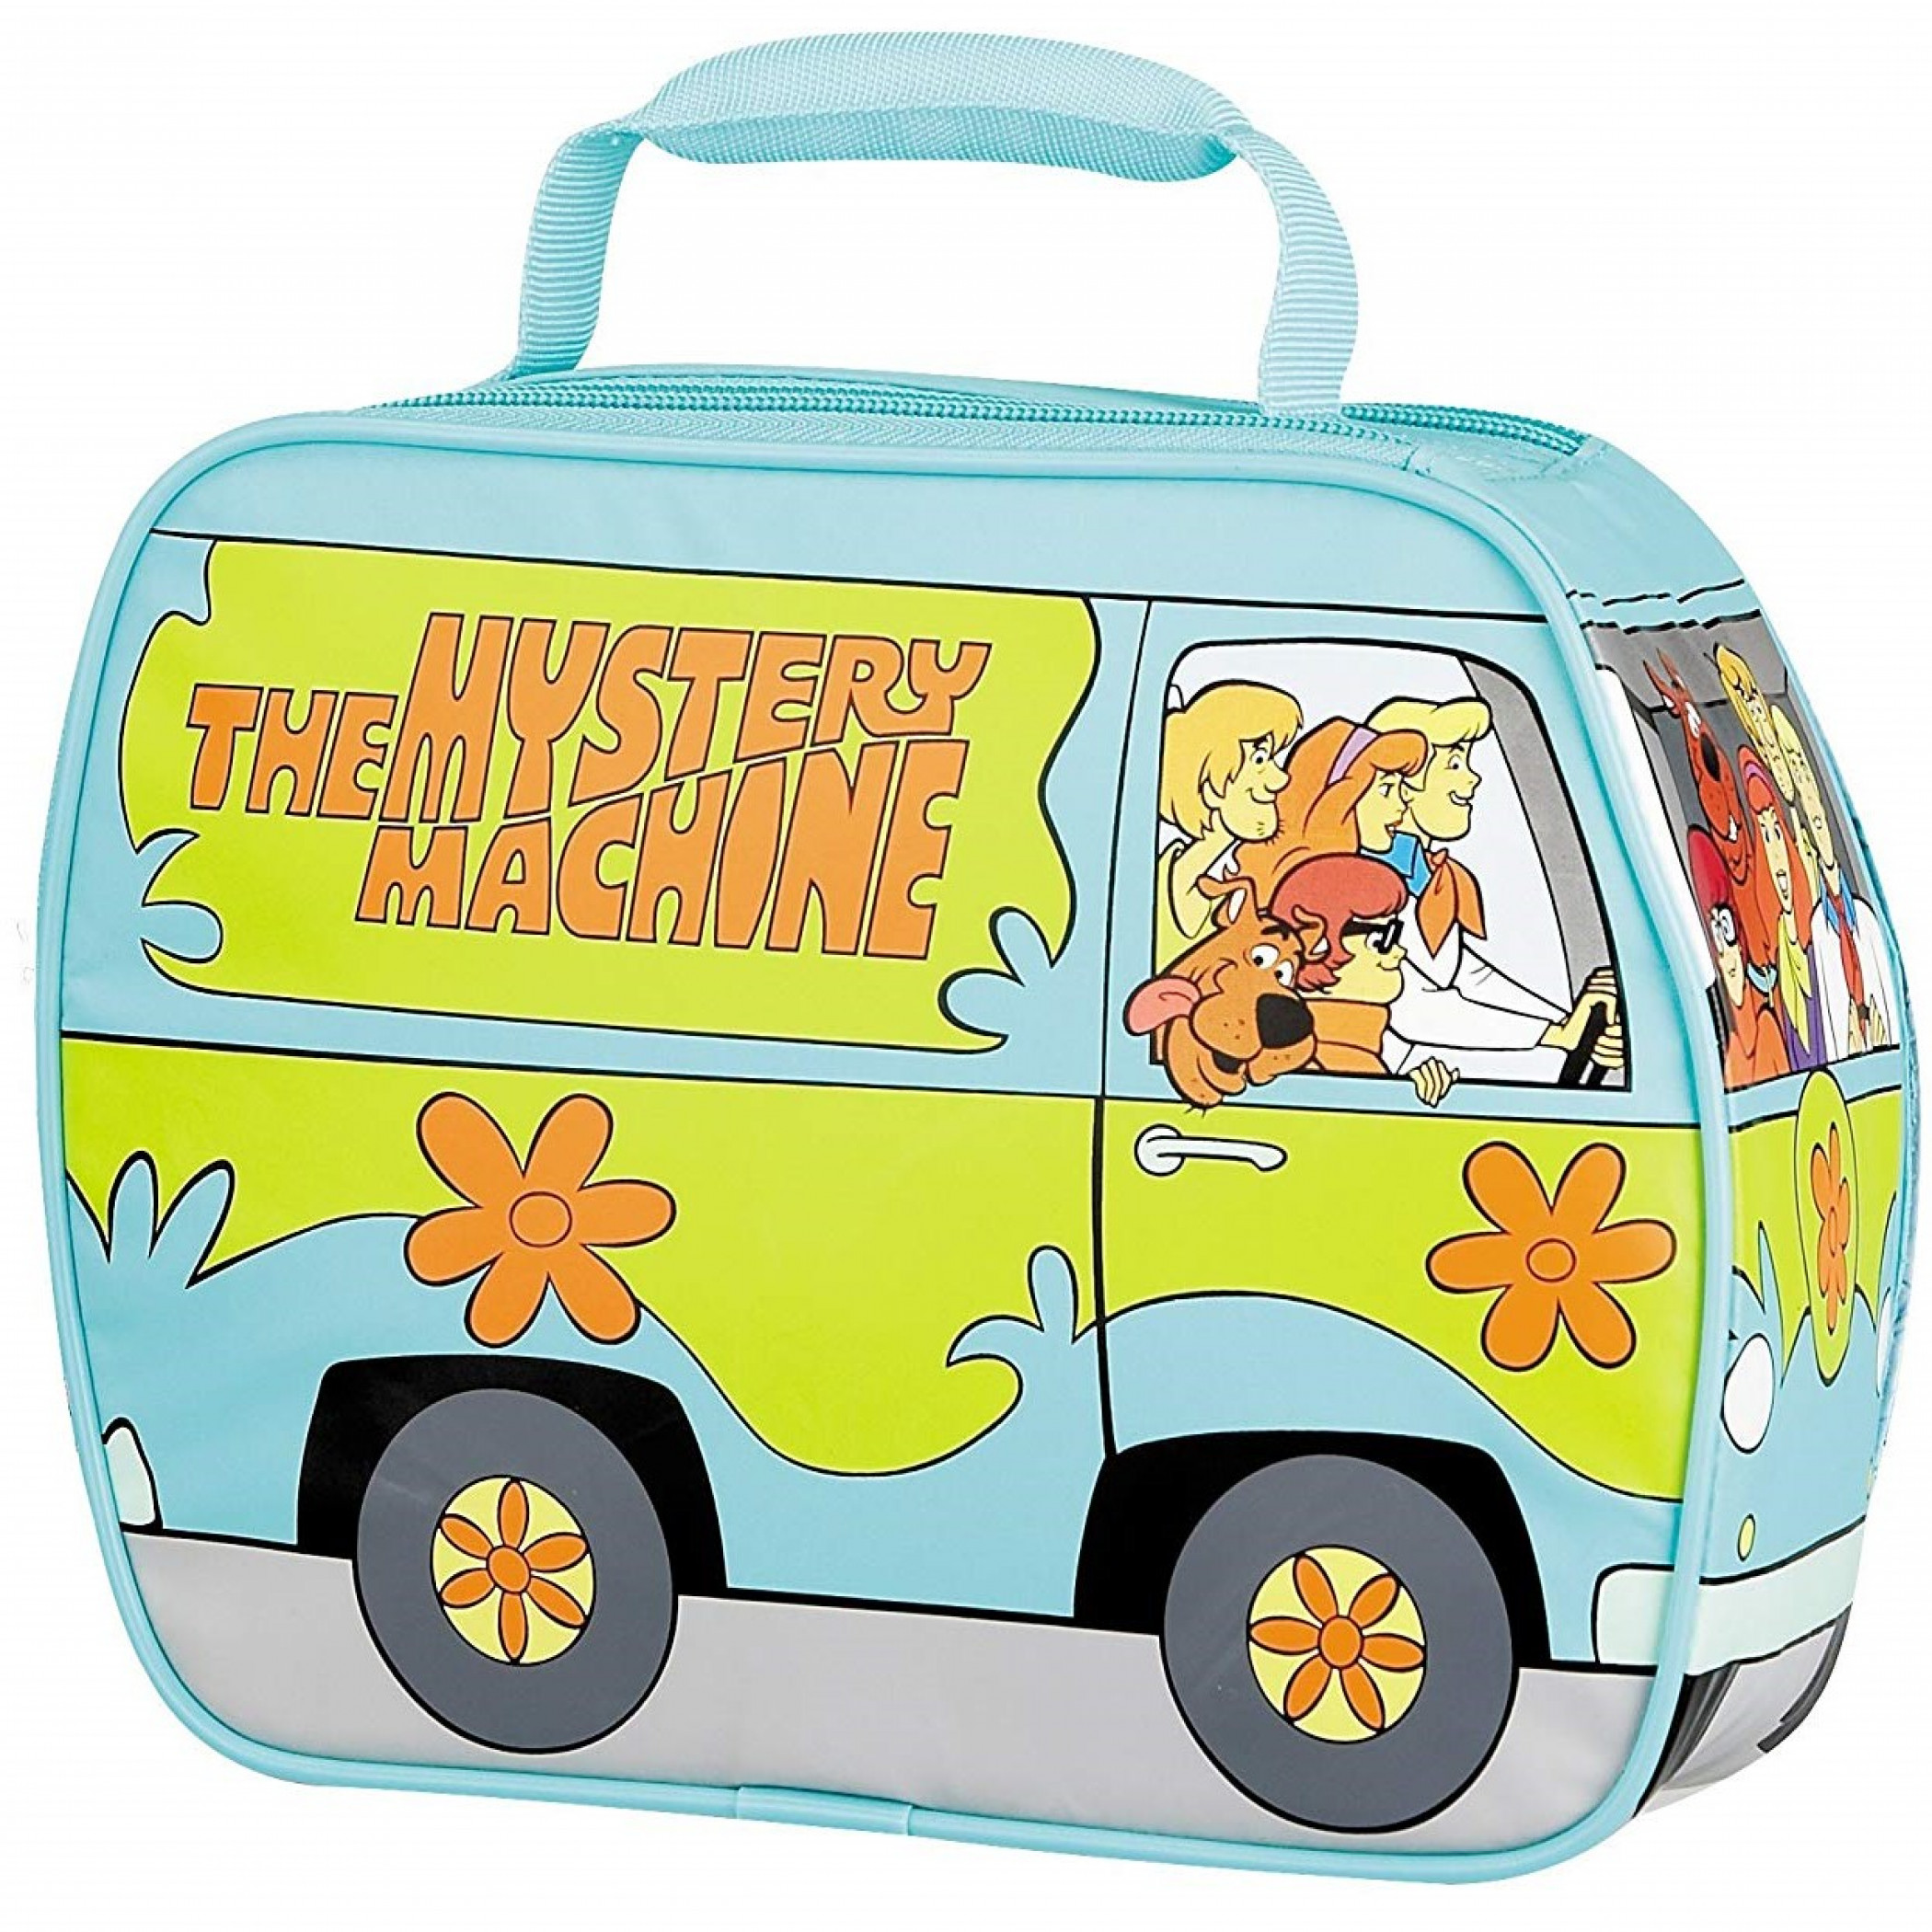 Scooby Doo and the Mystery Machine Thermos Lunch Bag